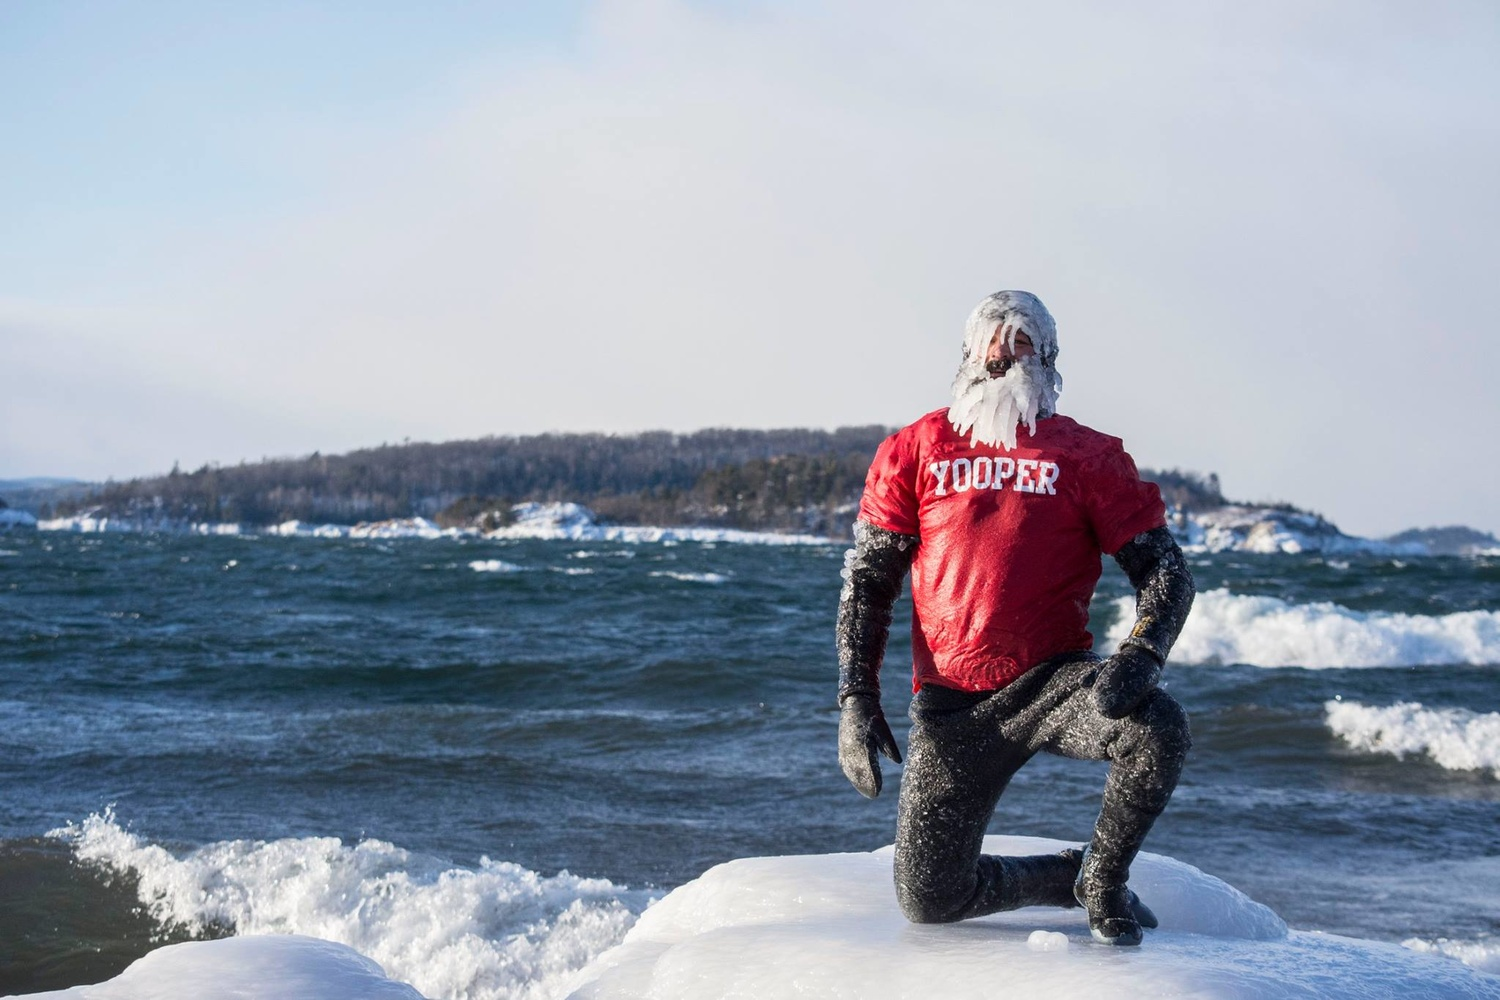 Surfer Dan poses with epic ice beard after surfing on Lake Superior Christmas Day